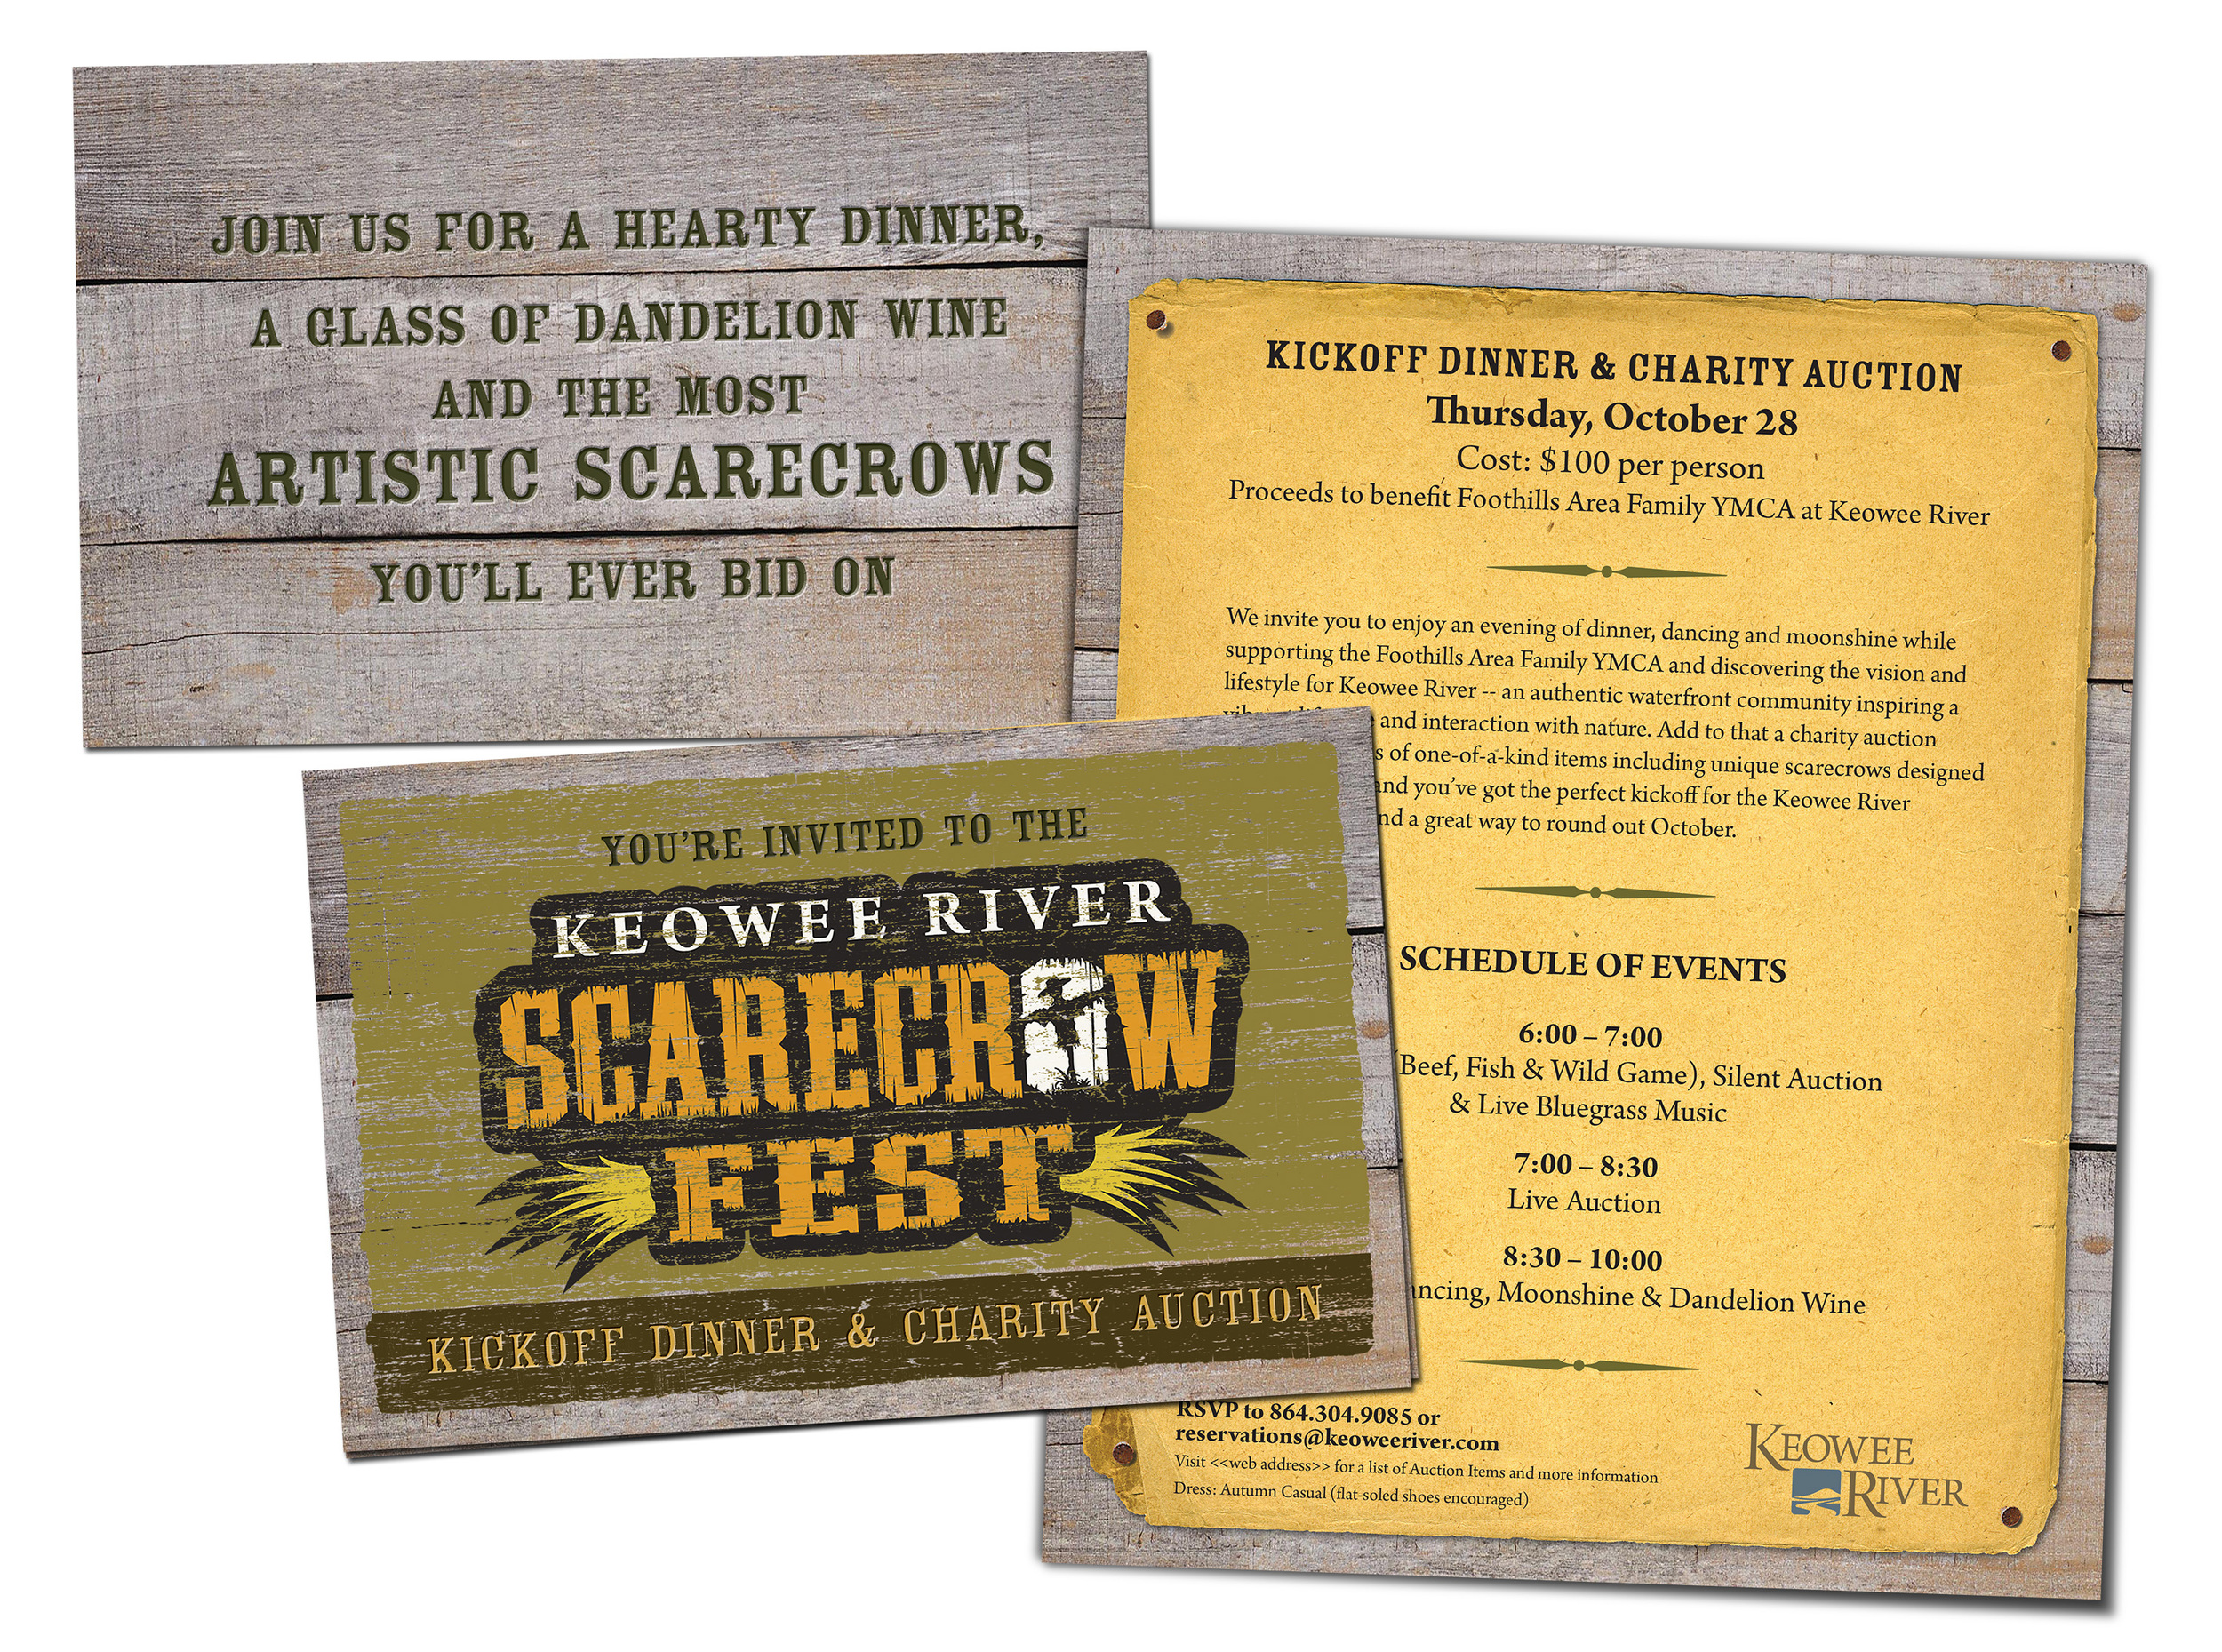 Keowee River Scarecrow Fest Kickoff Dinner and Charity Event Invitation